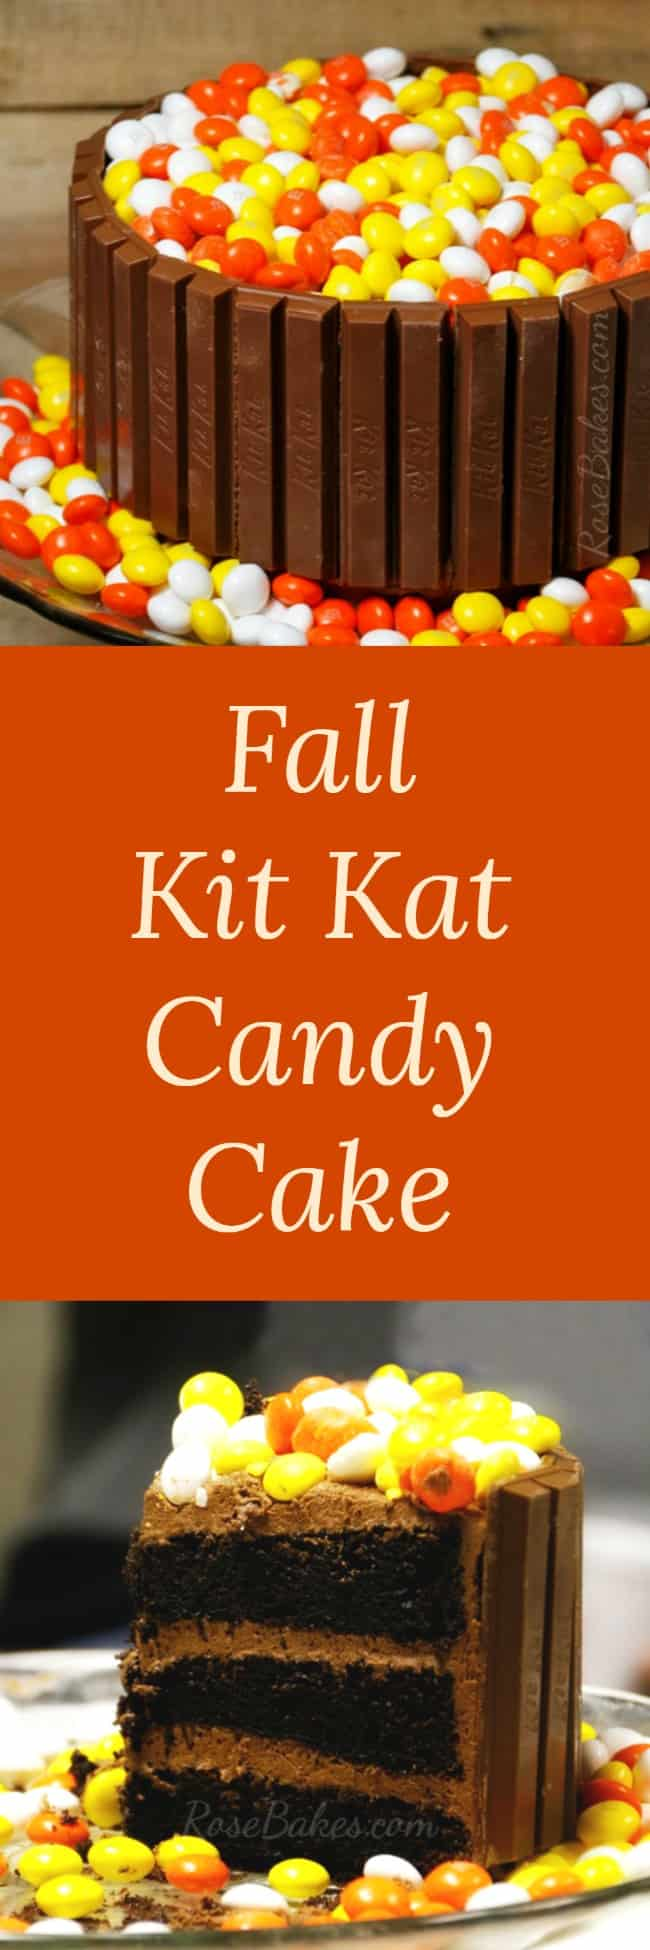 Fall Kit Kat Candy Cake by RoseBakes